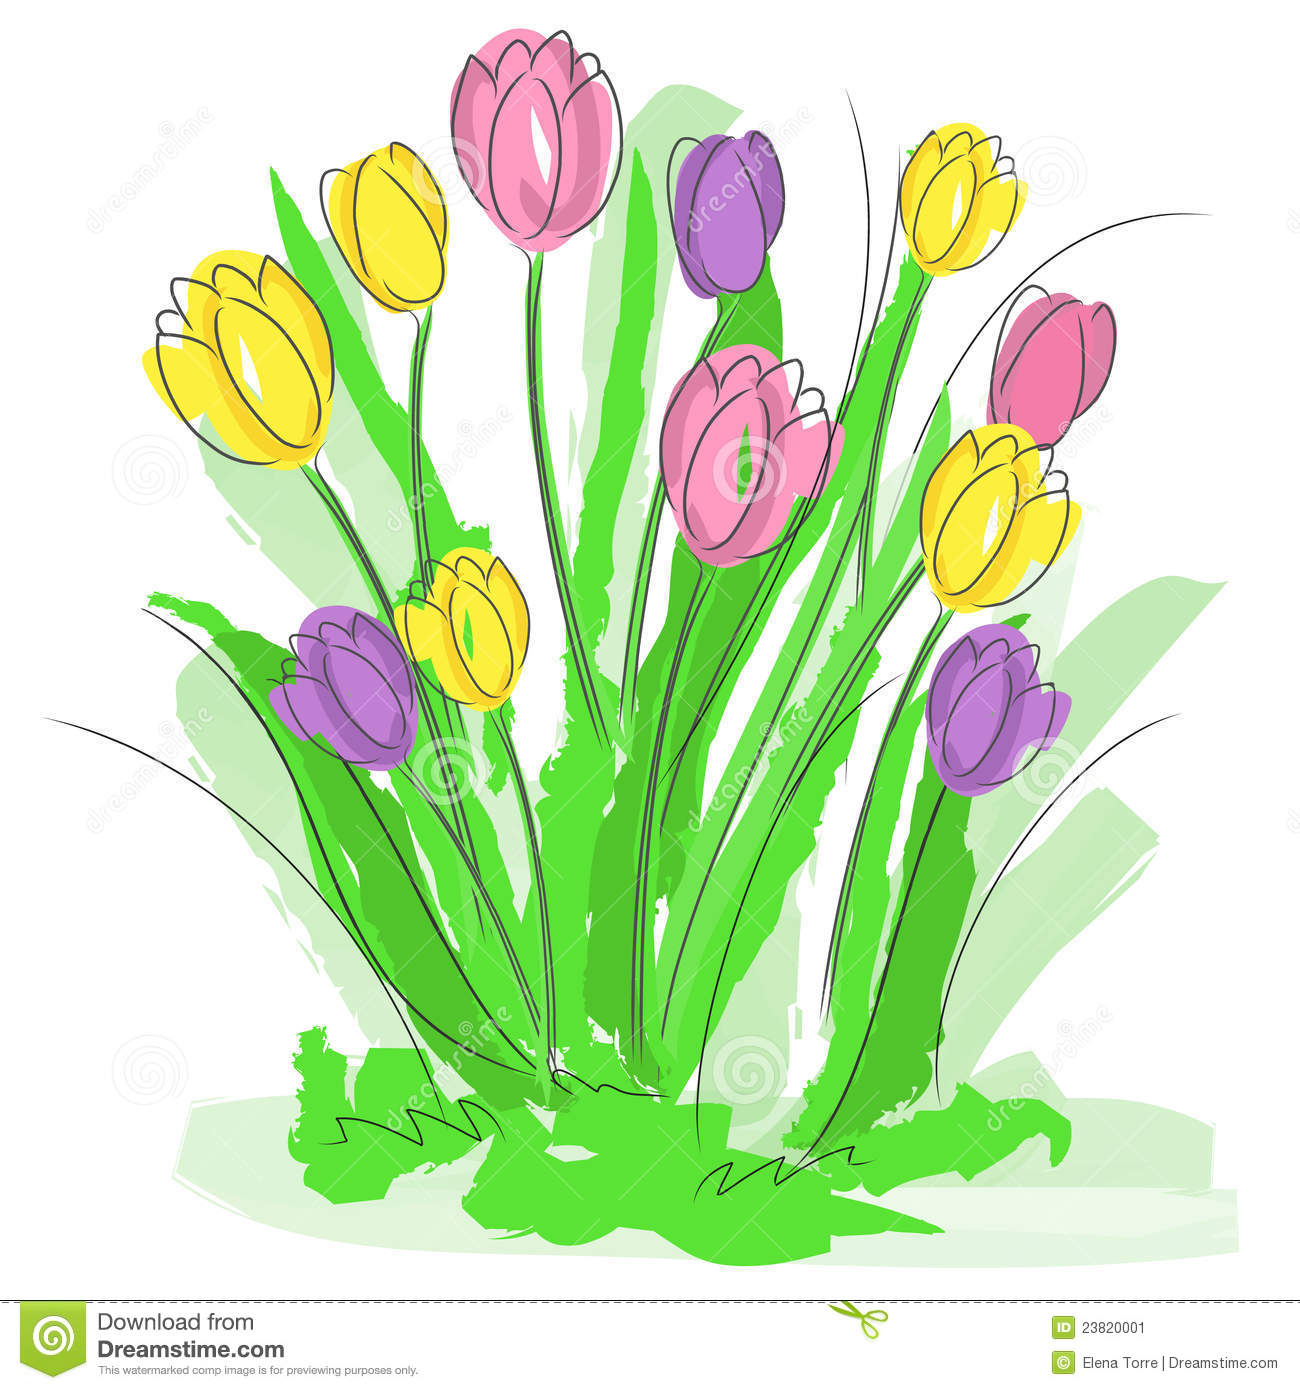 Spring Flowers Vector Stock Vector Illustration Of Floral 23820001